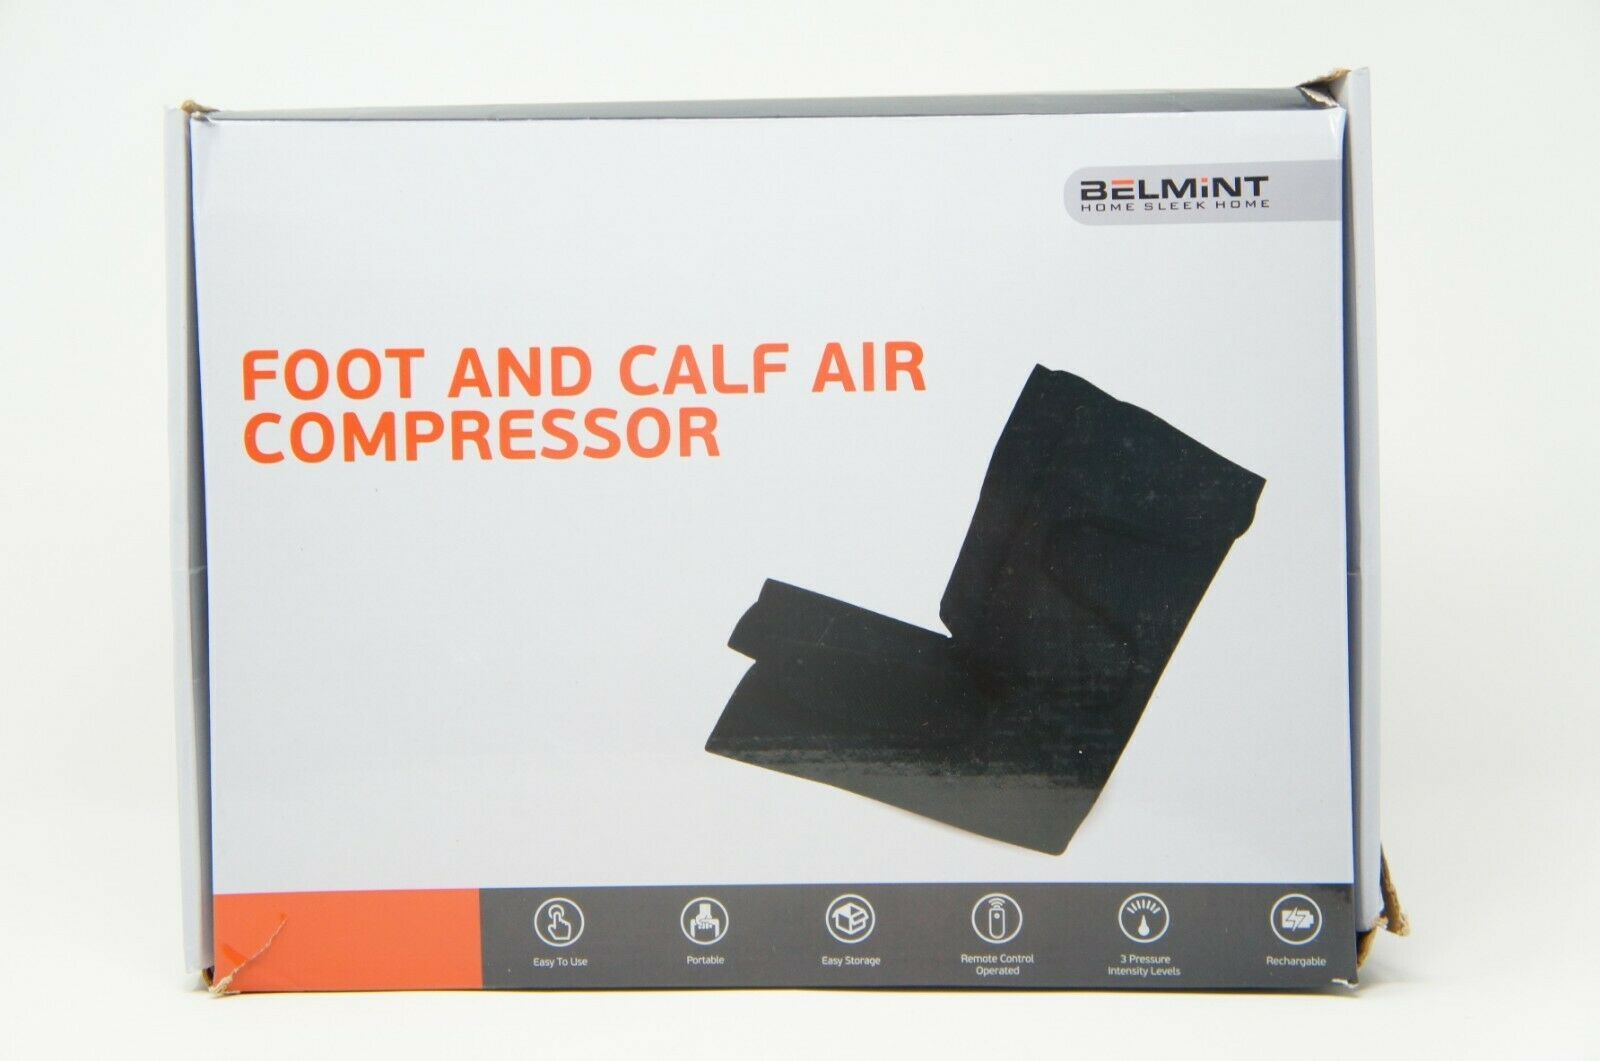 Belmint Leg Air Compression Massager for Foot Calf Circulationw/Controller